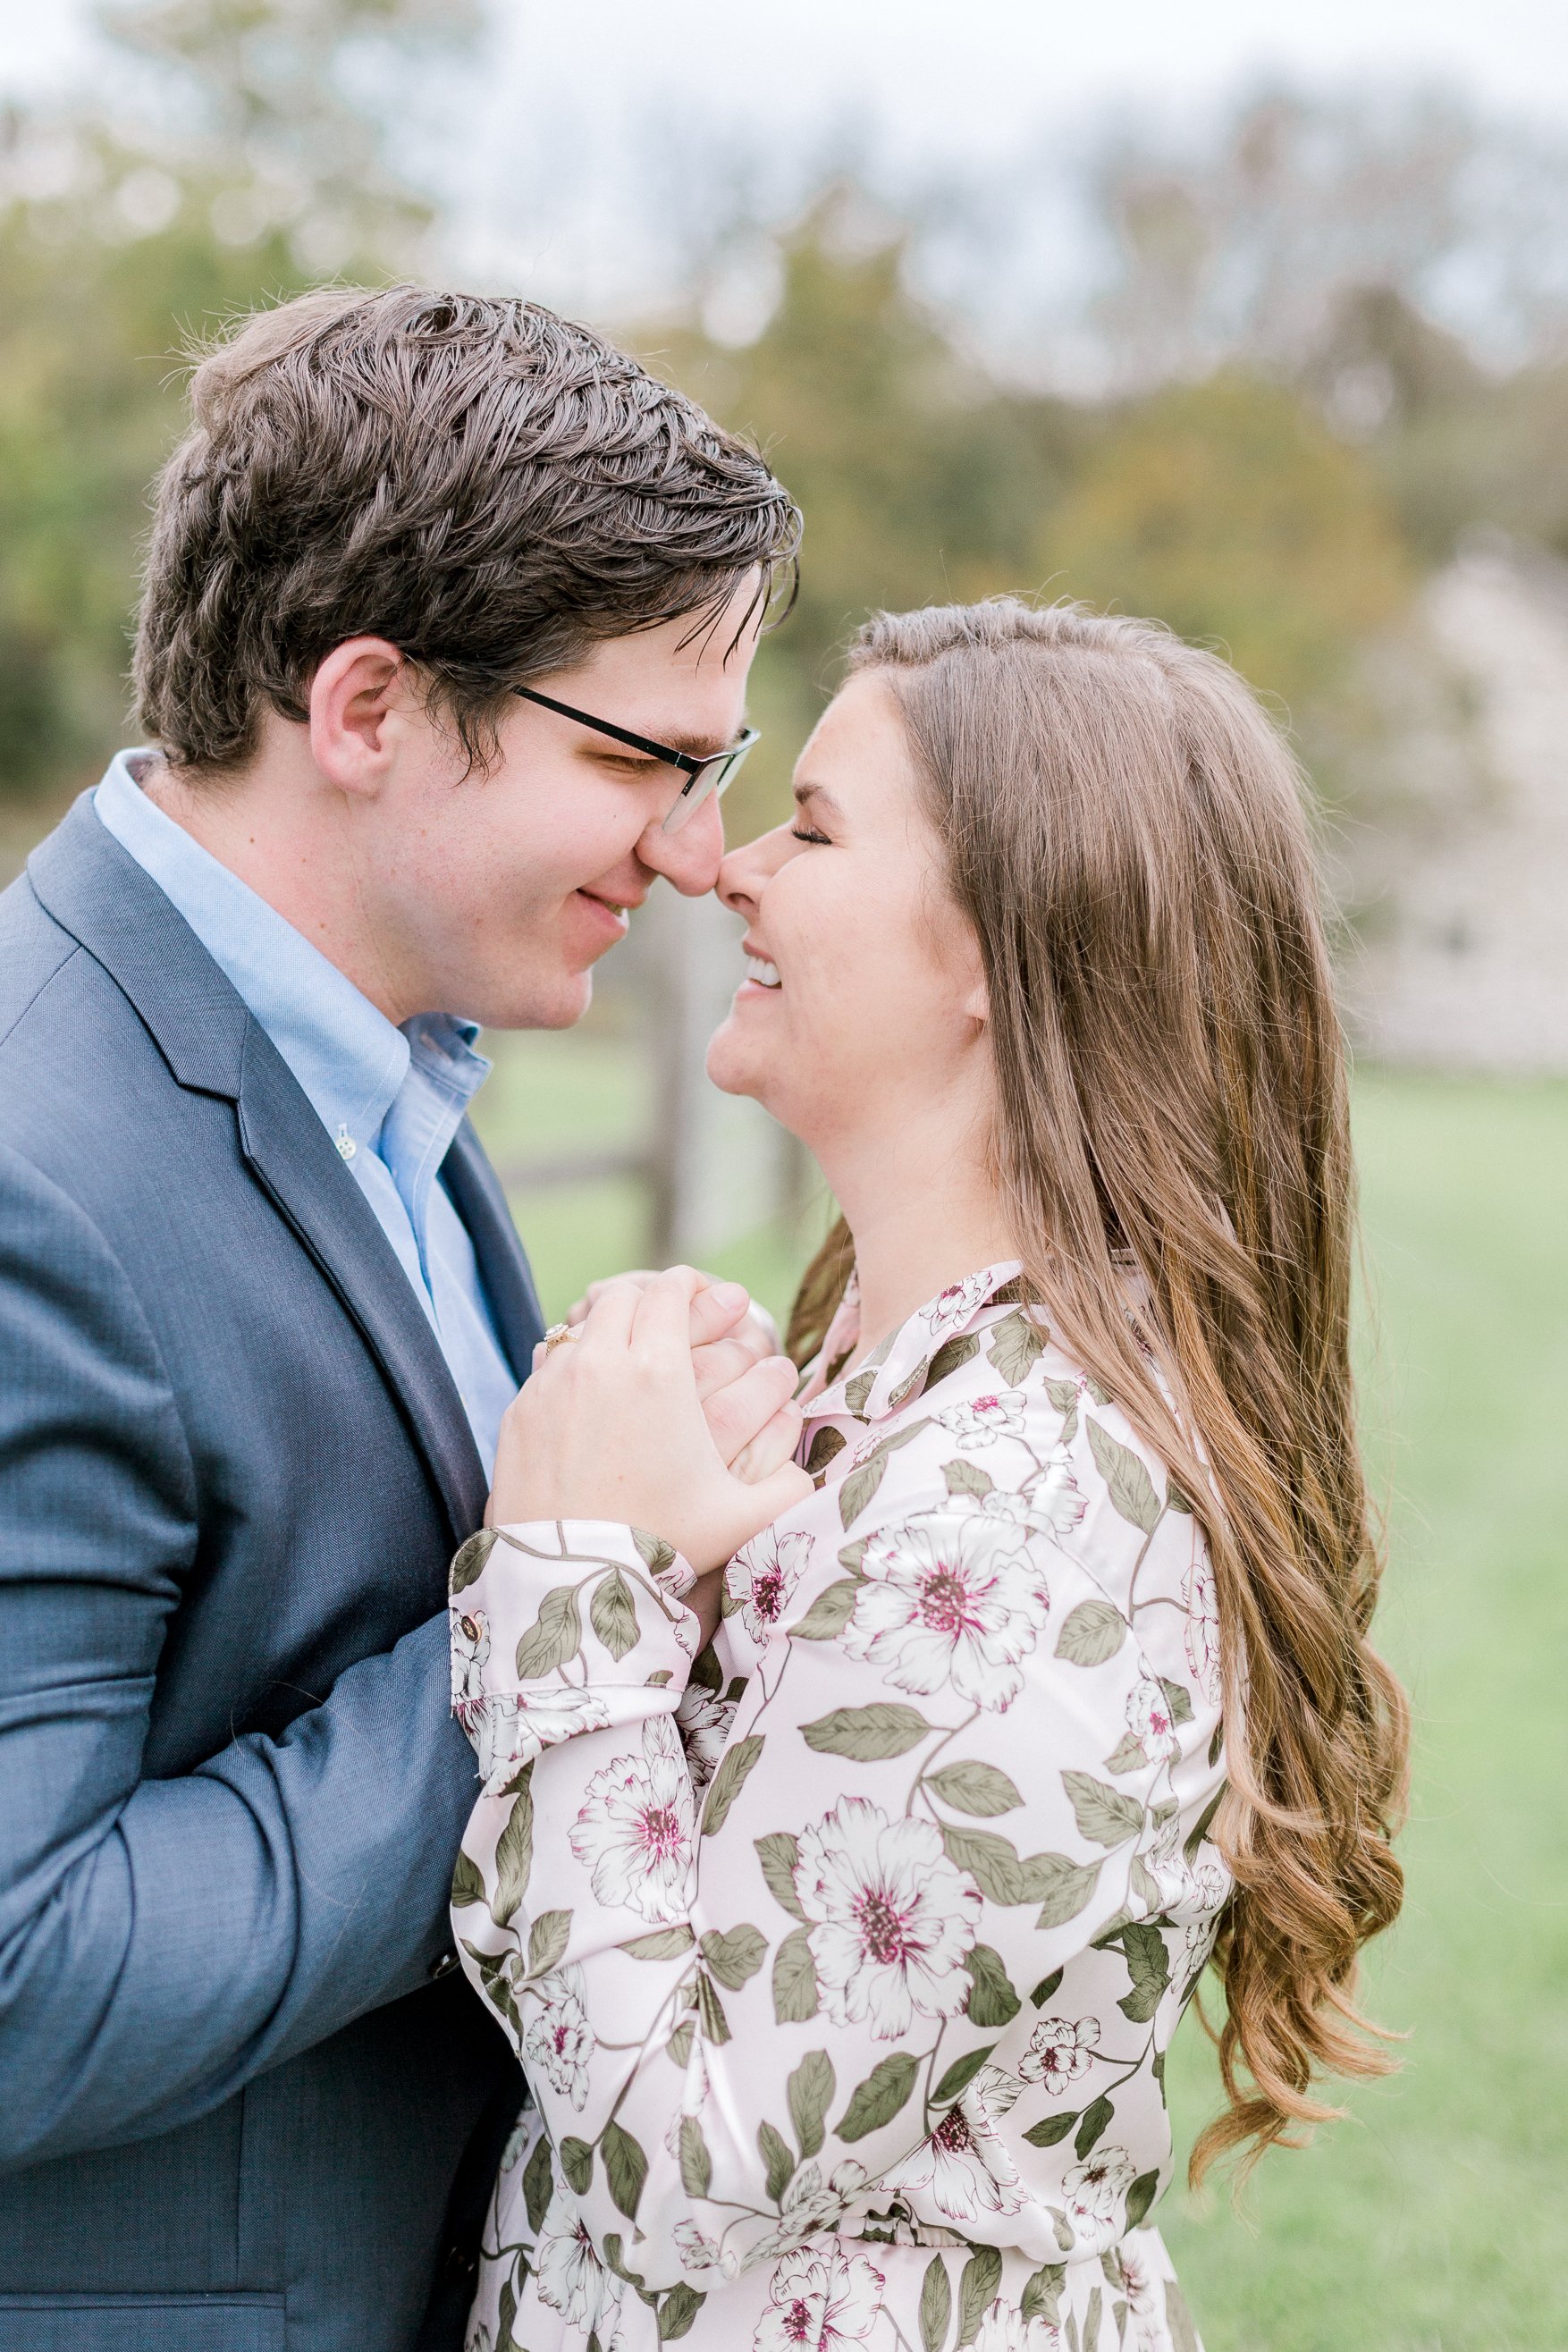 Lehigh valley Fish hatchery fall Engagement Session wedding and lifestyle photographer Lytle Photo Co (25 of 66).jpg